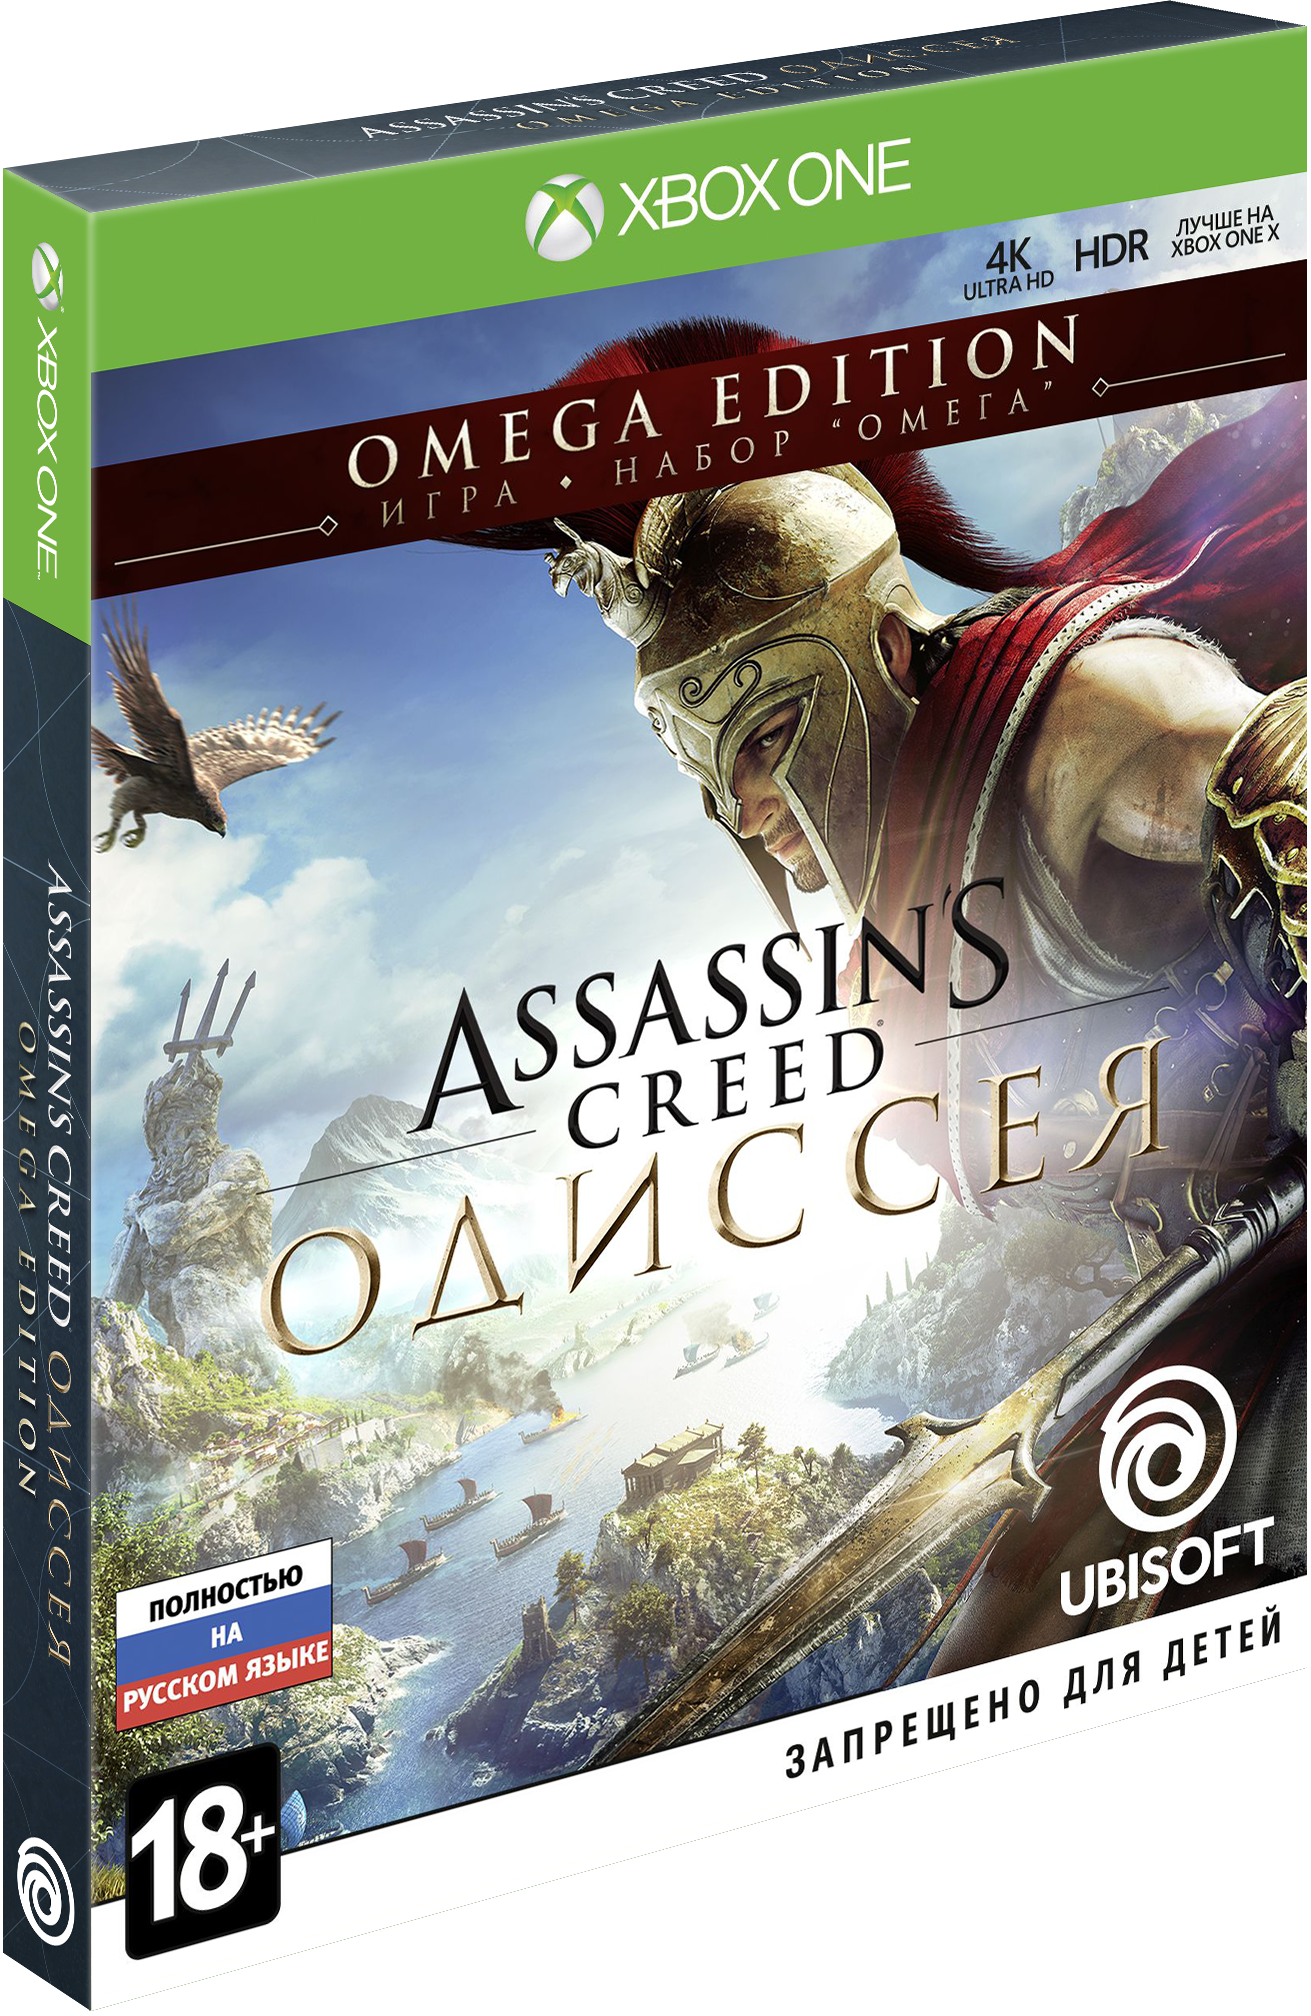 Купить со скидкой Assassin's Creed: Одиссея. Omega Edition [Xbox One]